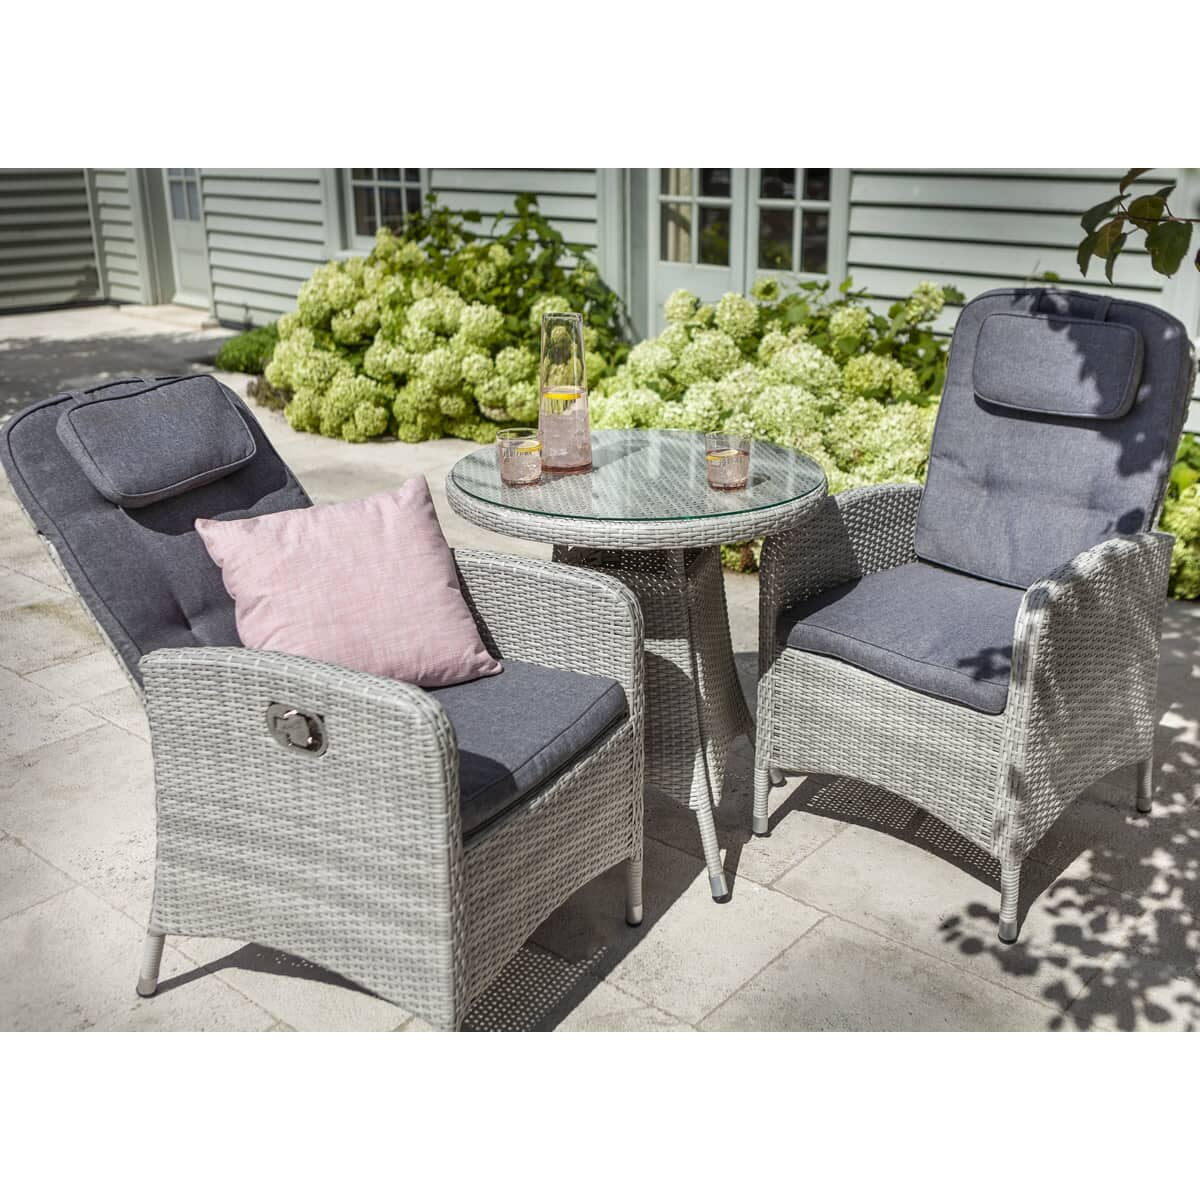 Swell Hartman Curve Reclining Bistro Set Hcurset04 Garden Ocoug Best Dining Table And Chair Ideas Images Ocougorg